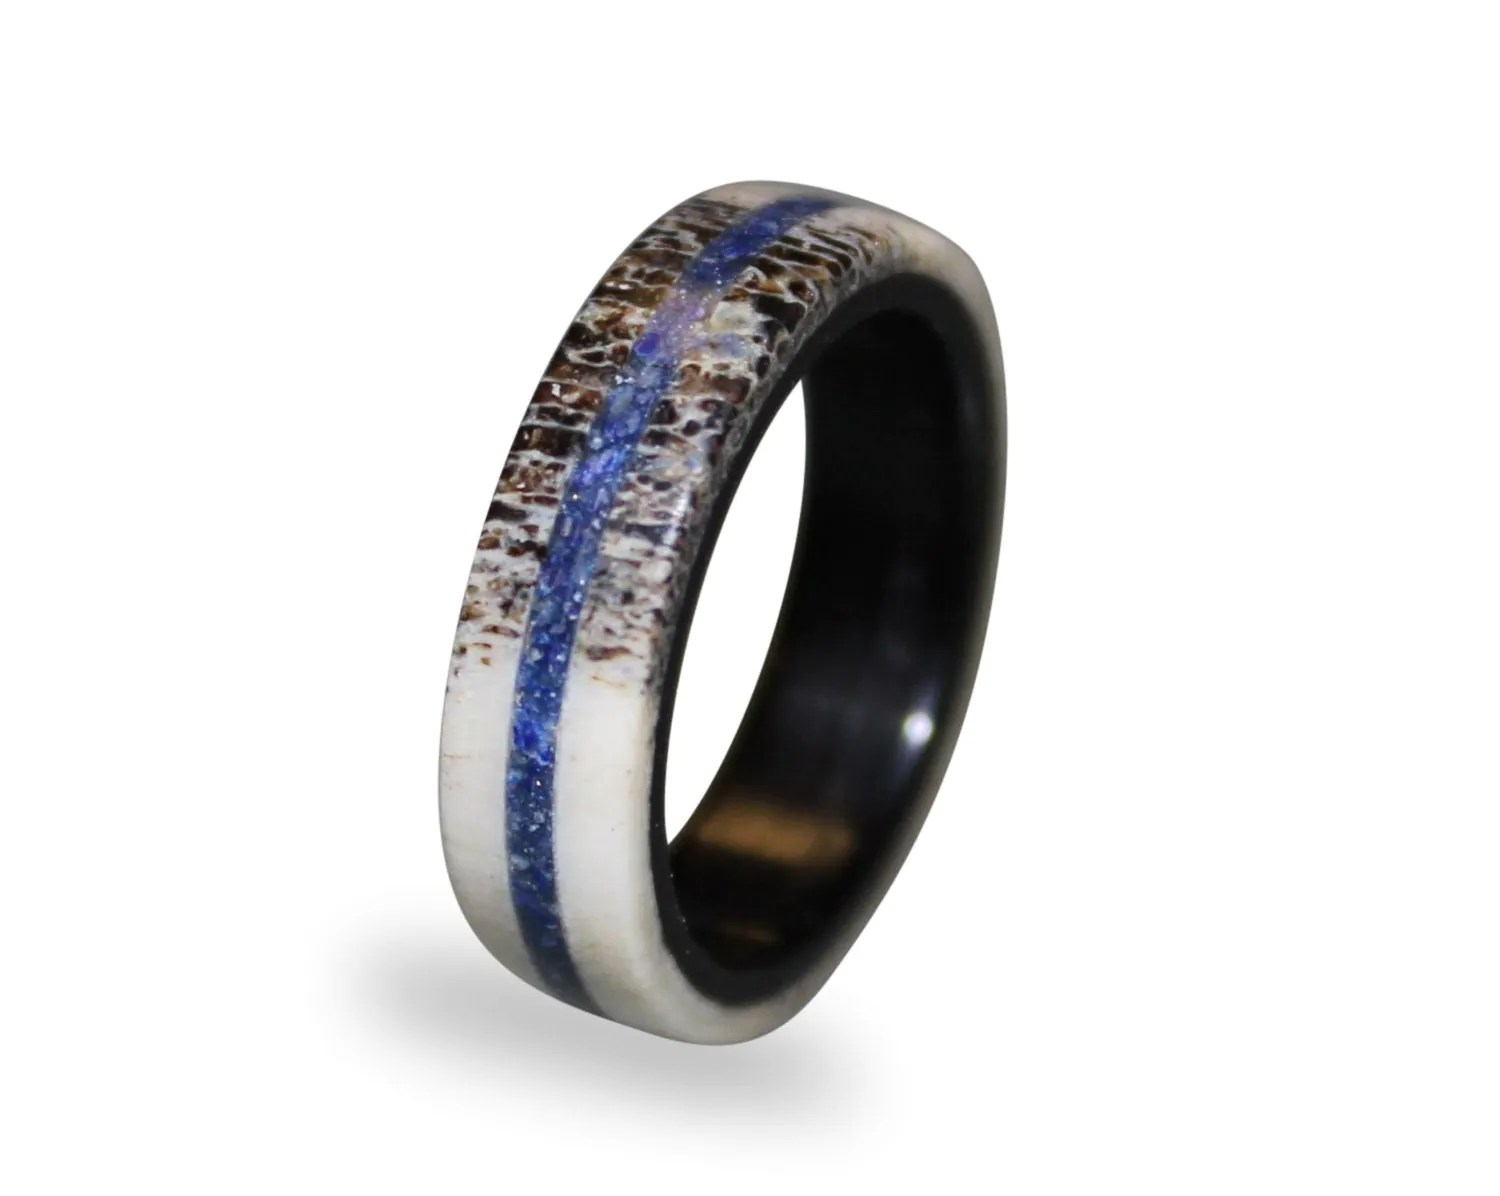 deer antler wedding rings antler wedding band Deer antler wedding rings Deer Antler Fashion Ring Antler Ring With Lapis Lazuli Inlay Lapis